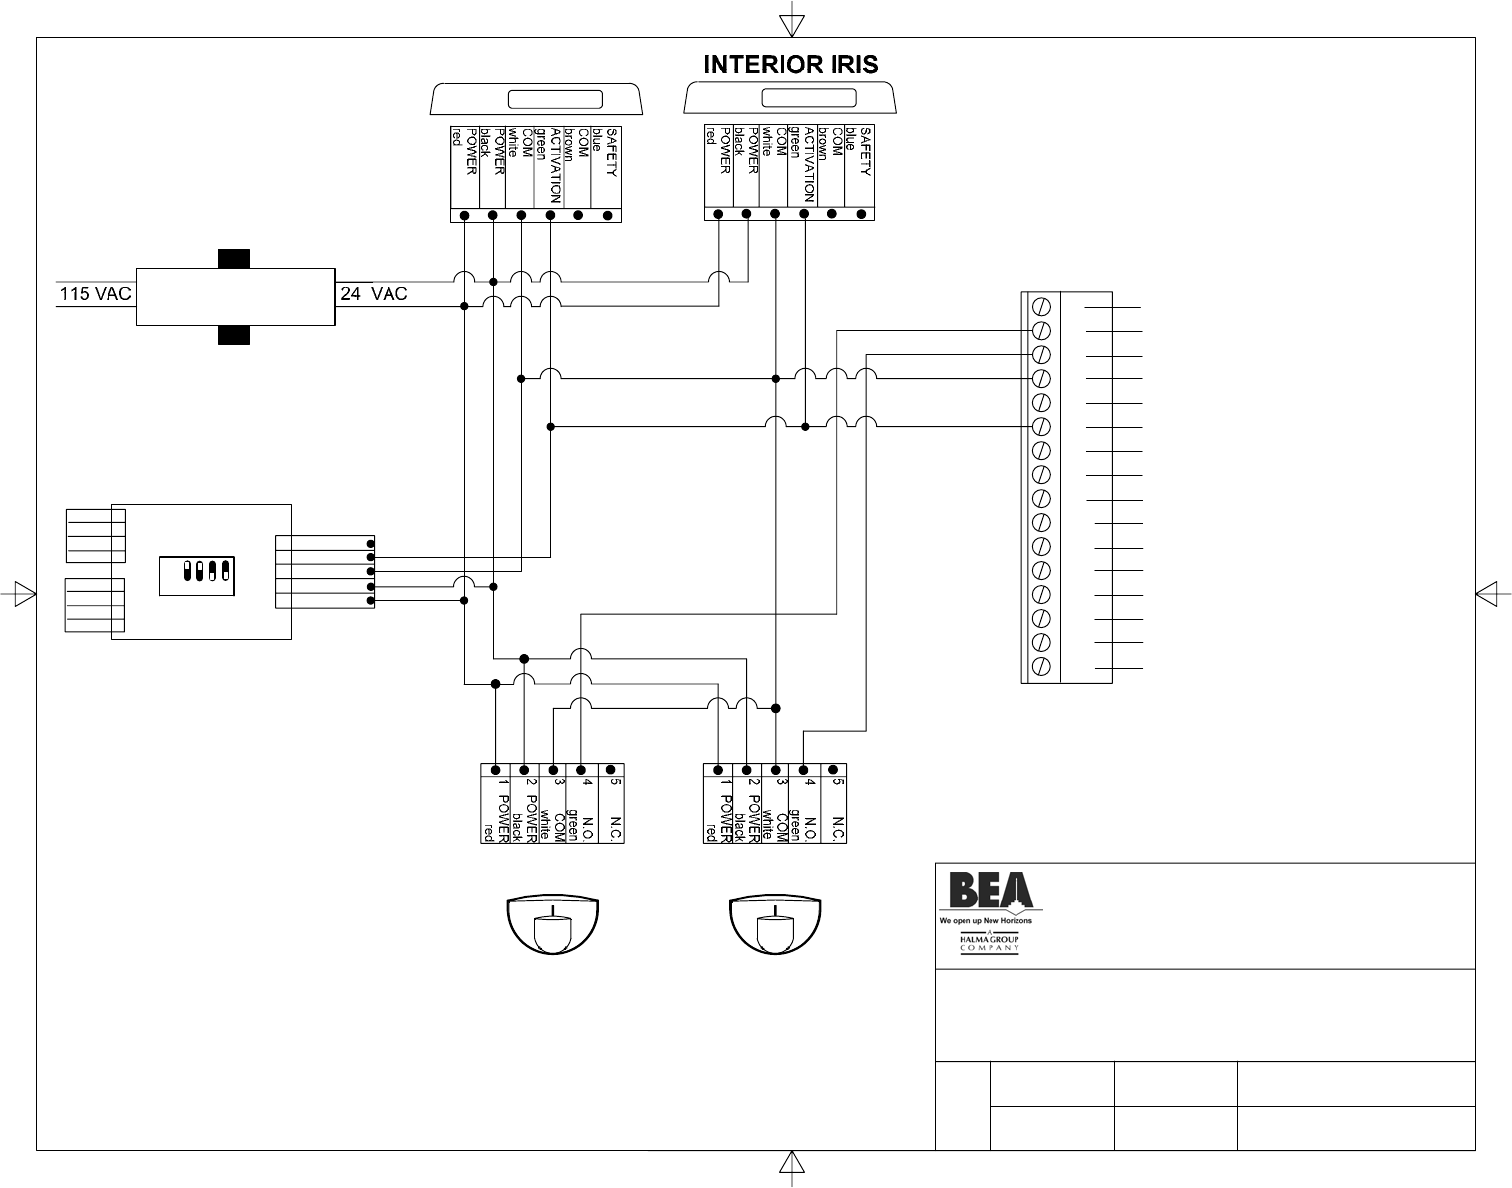 94039b03 c6f0 4630 ae4b cd4abc395ce4 bg1 bea switch c2150 user guide manualsonline com horton 4160 wiring diagram at gsmportal.co